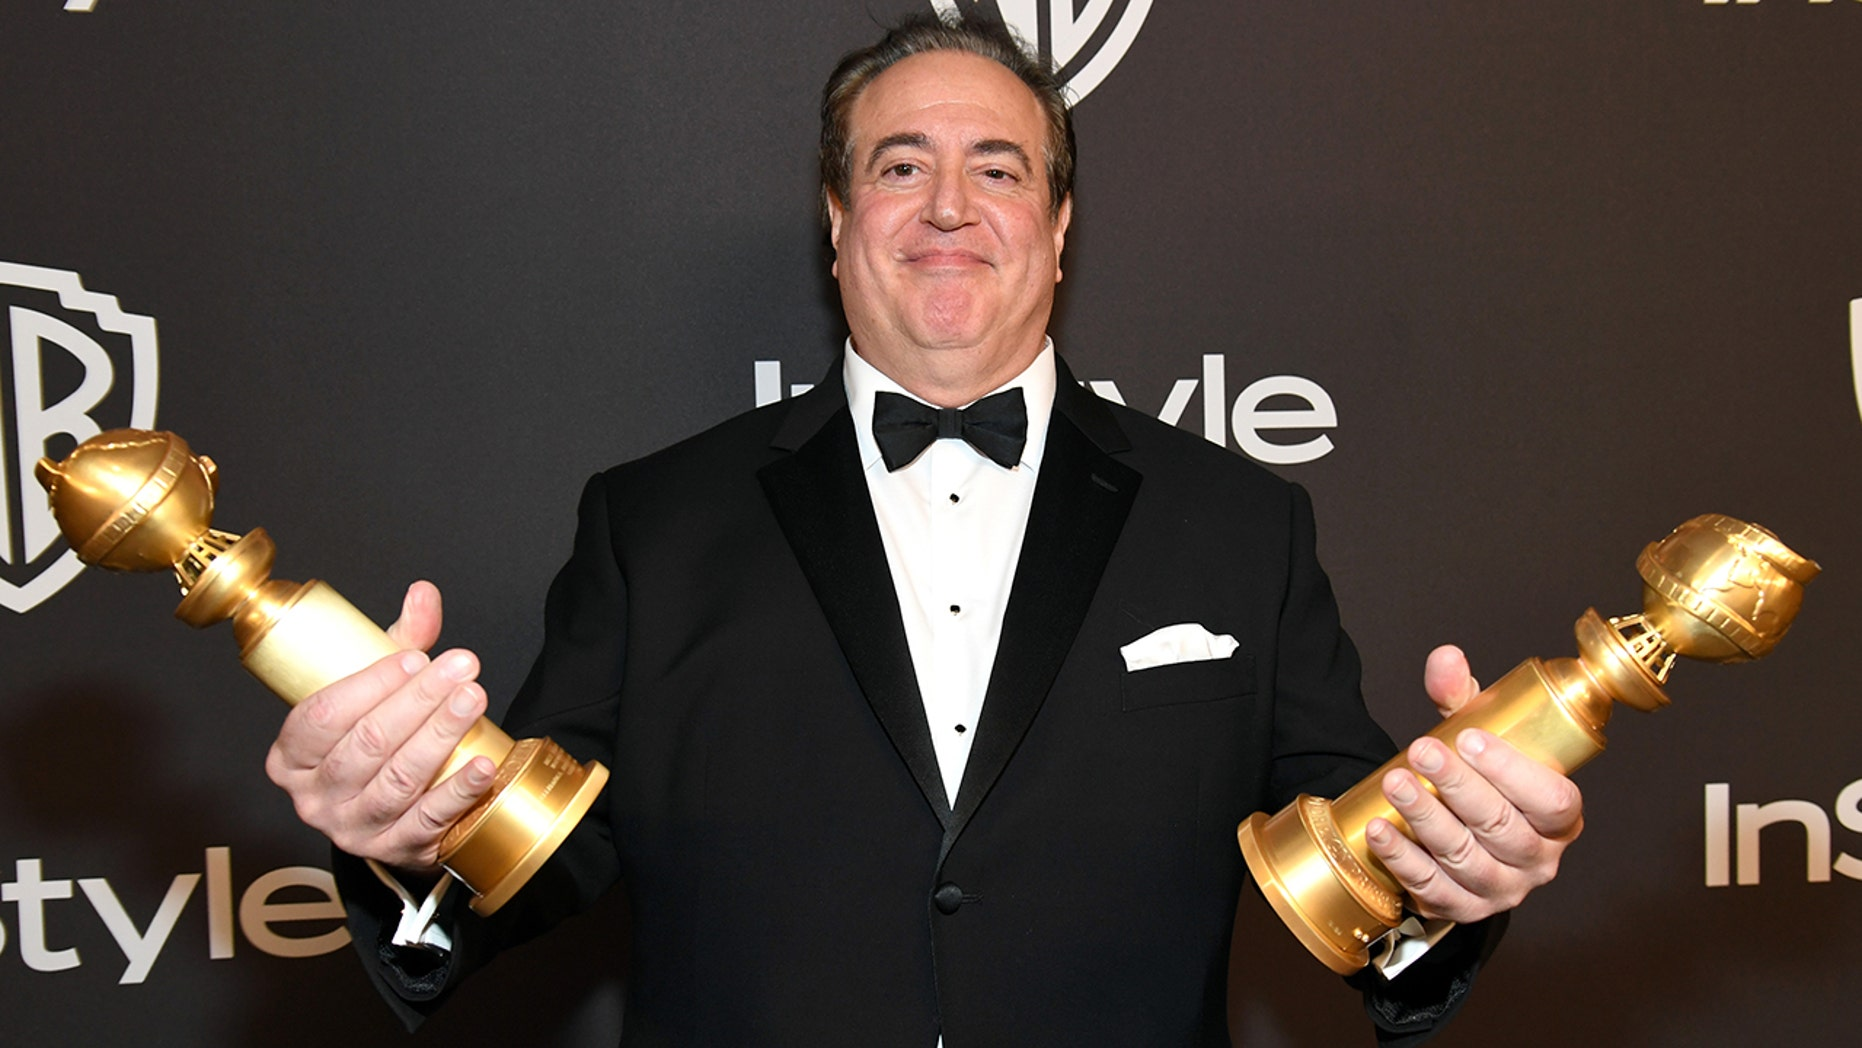 'Green Book' screenwriter Nick Vallelonga apologized after getting backlash for a 2015 tweet.